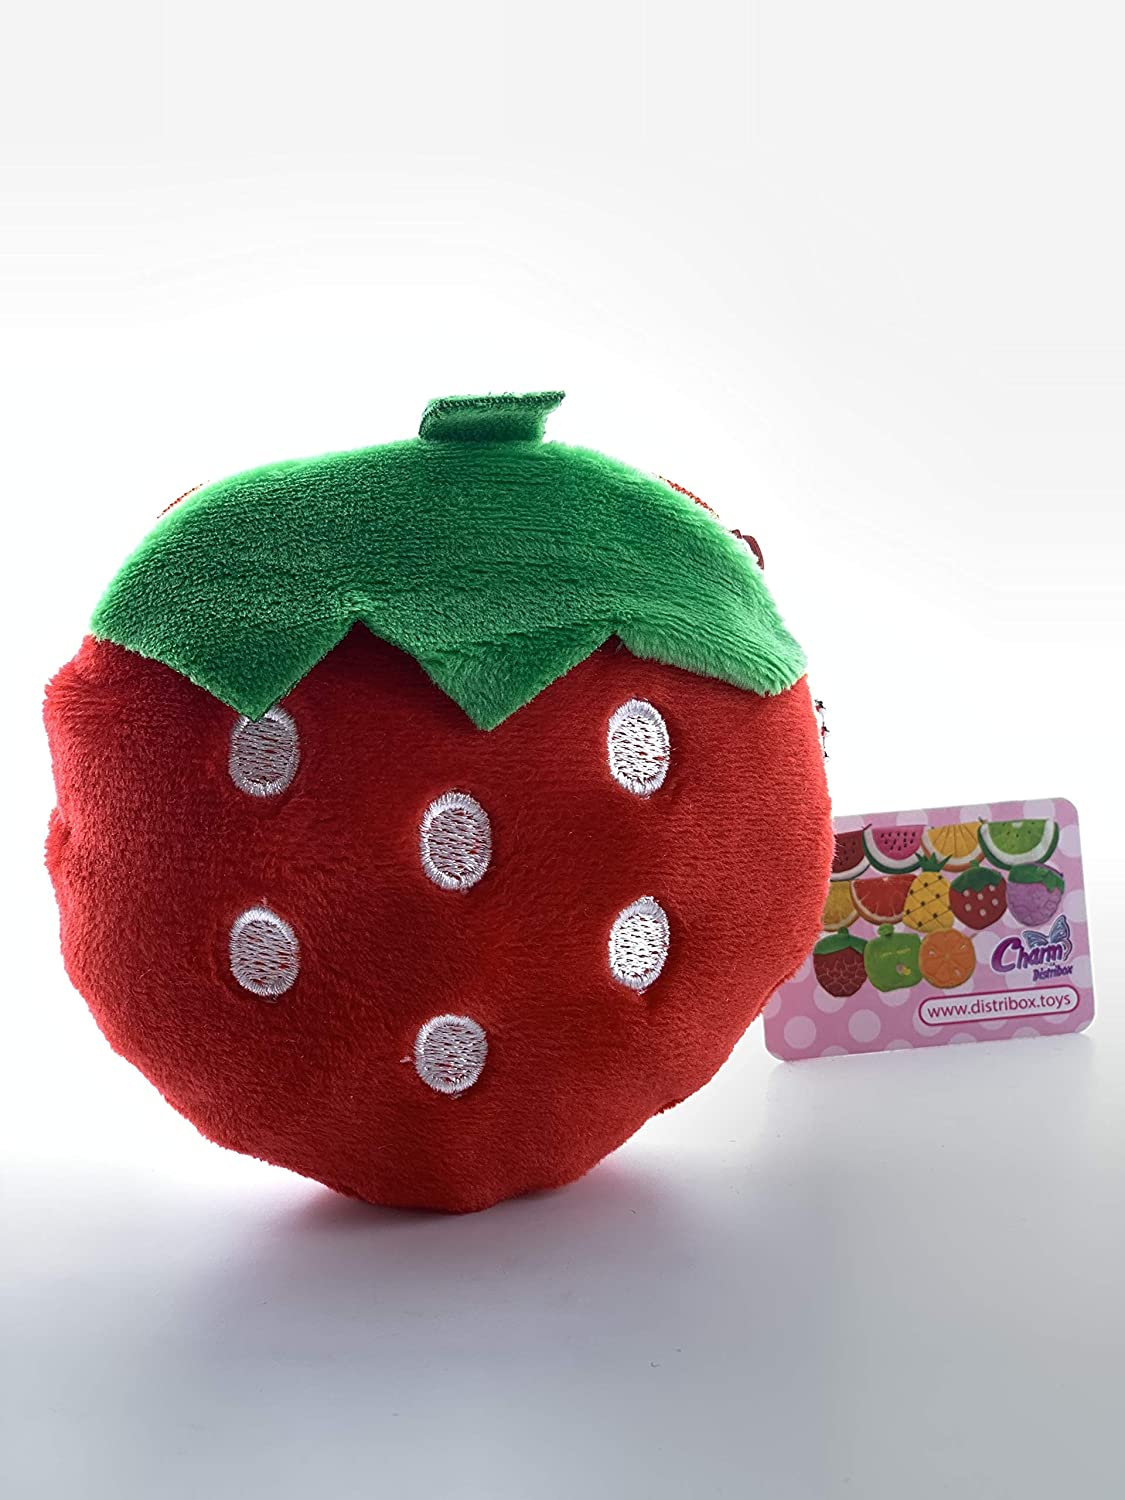 Charm - Monederos Frutas, Monedero Coleccionable: Amazon.es ...